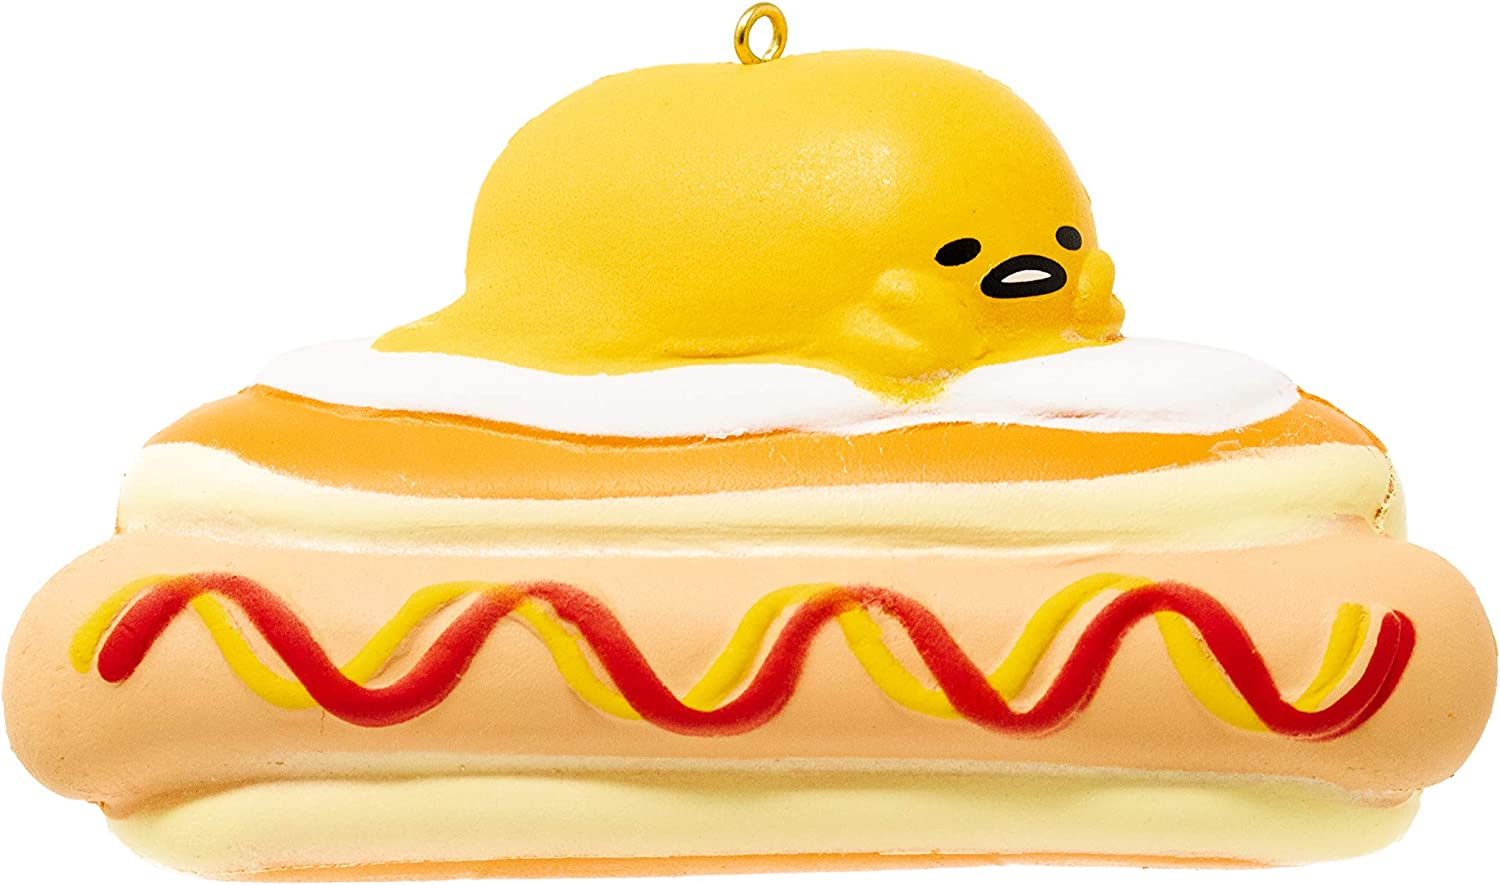 Stress Balls Play at Home /& Relieve Stress with Kawaii Squishies for Kids Boys Pizza Sanrio Gudetama Lazy Egg Yolk Diner Slow Rising Squishy Toy Adults Girls for Birthday Gifts Party Favors